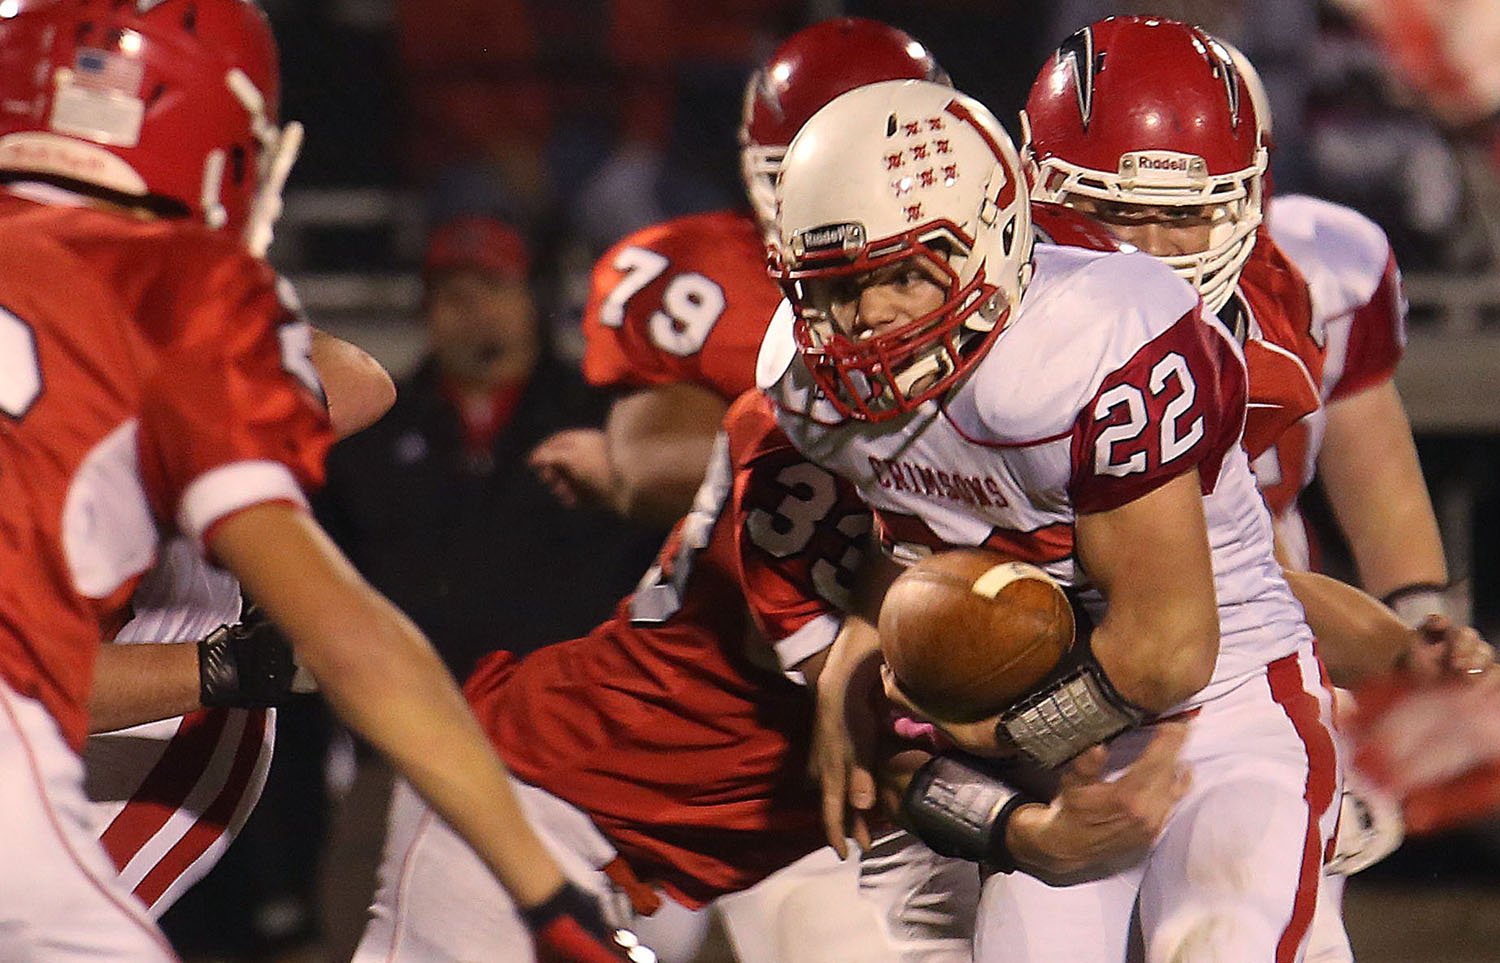 Crimsons ball carrier Matt Rooney tries to keep hold of the ball while being strong-armed by Titans defender Charlie Heminghous. The Chatham Glenwood High School Titans defeated the Jacksonville High School Crimsons 49-35 in football action on Friday evening, Oct. 24, 2014. David Spencer/The State Journal-Register